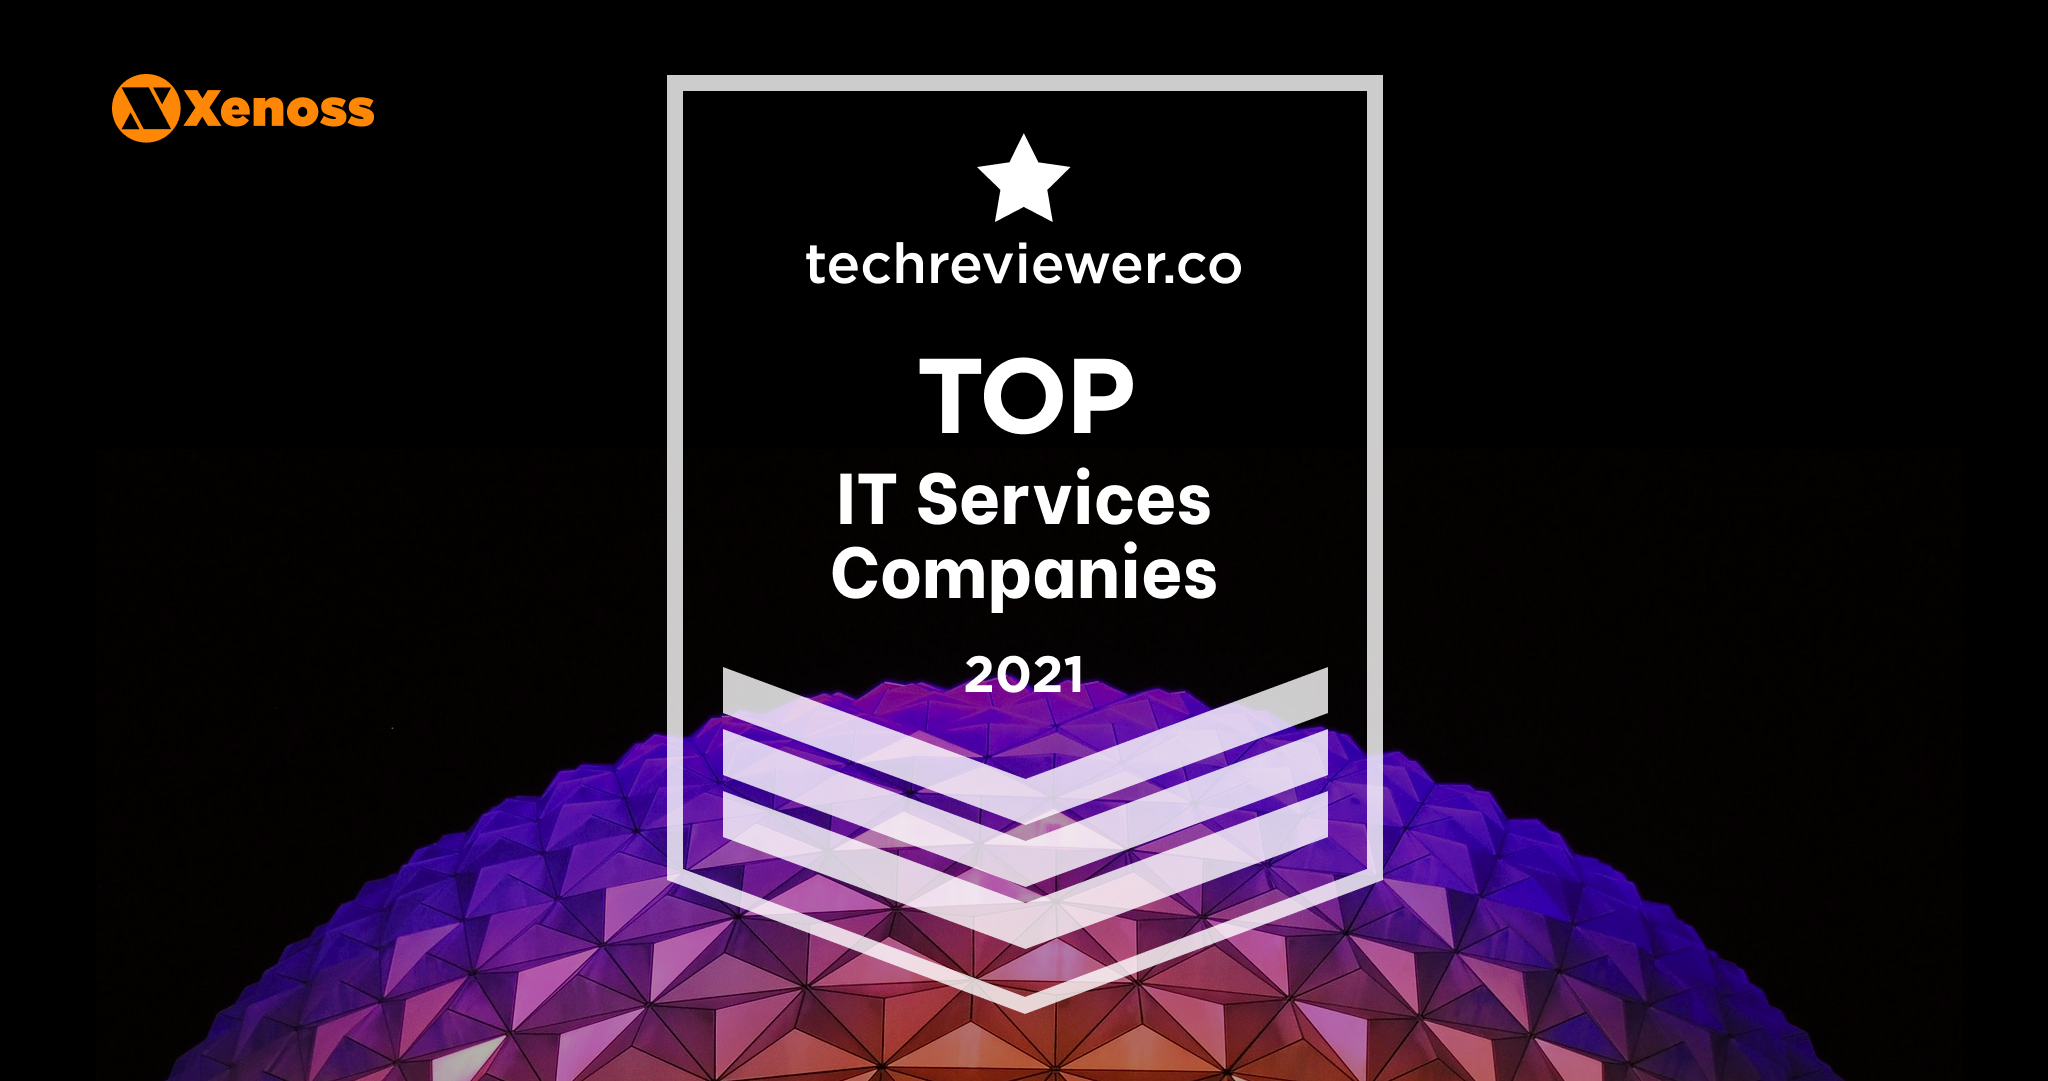 Xenoss is recognized by Techreviewer as a Top IT Services company in 2021